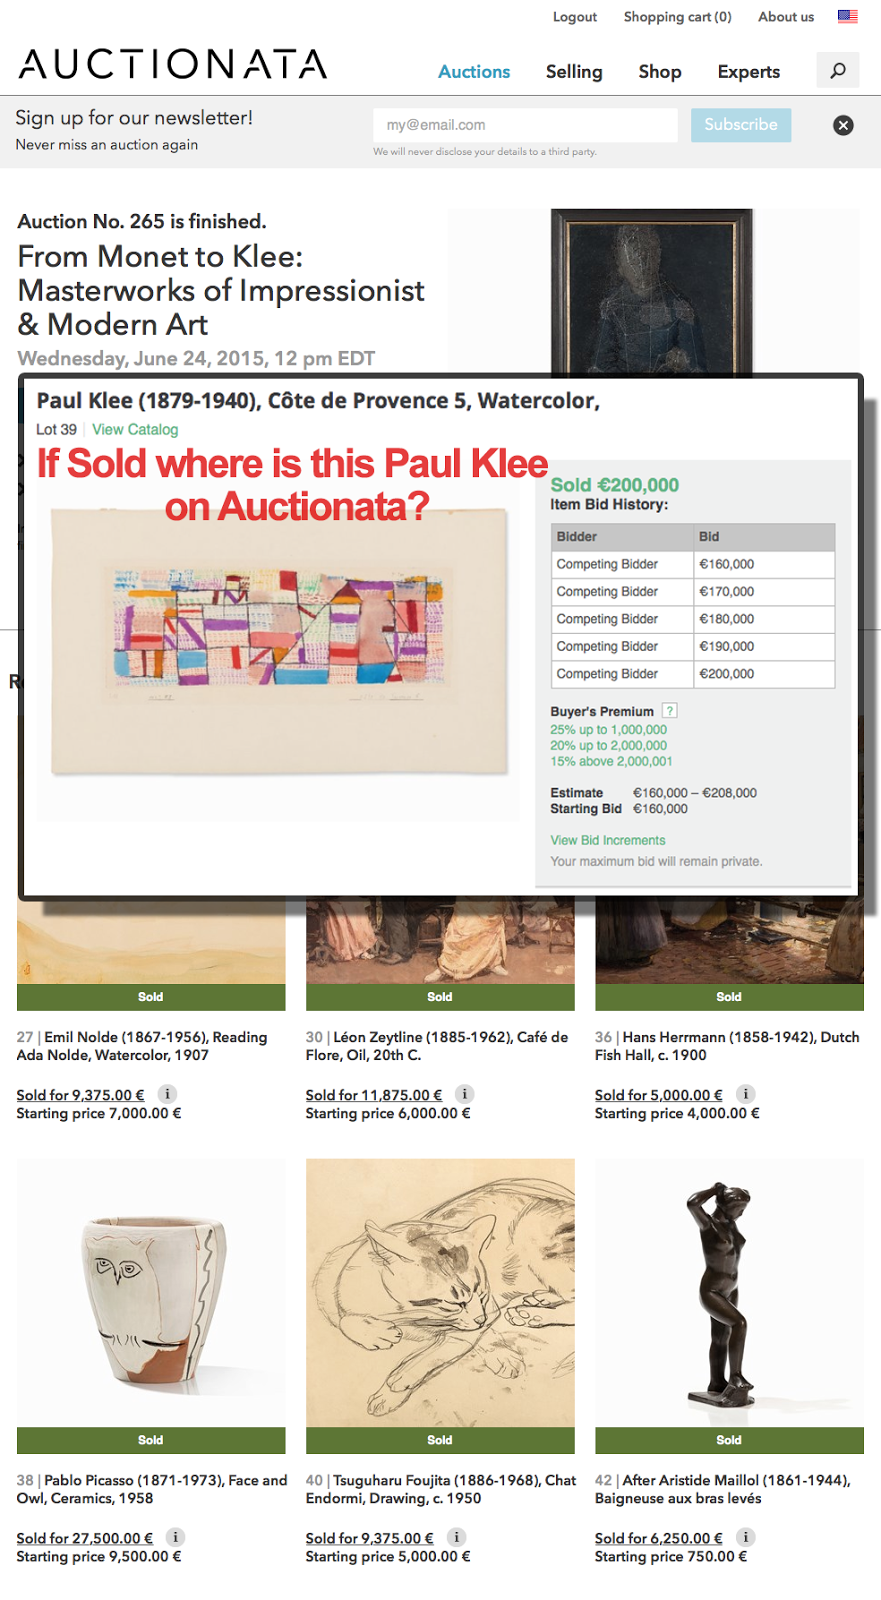 If Sold where is this Paul Klee on Auctionata?